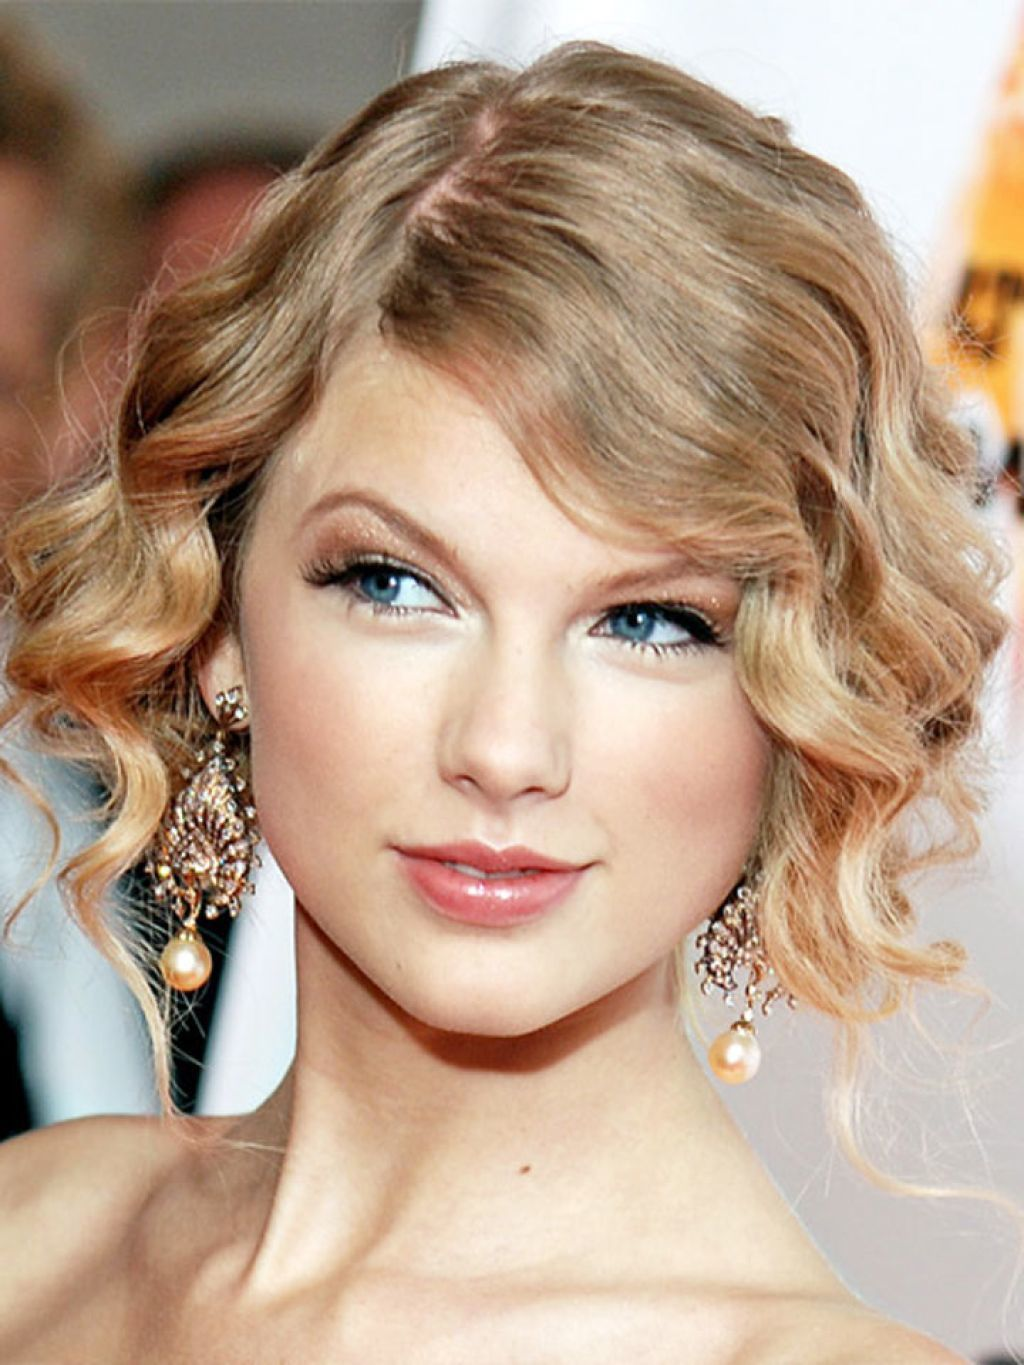 Fabulous Prom Hairstyles for Short Hair Formal Hairstyles For Short HairFormal Hairstyles For Short Hair